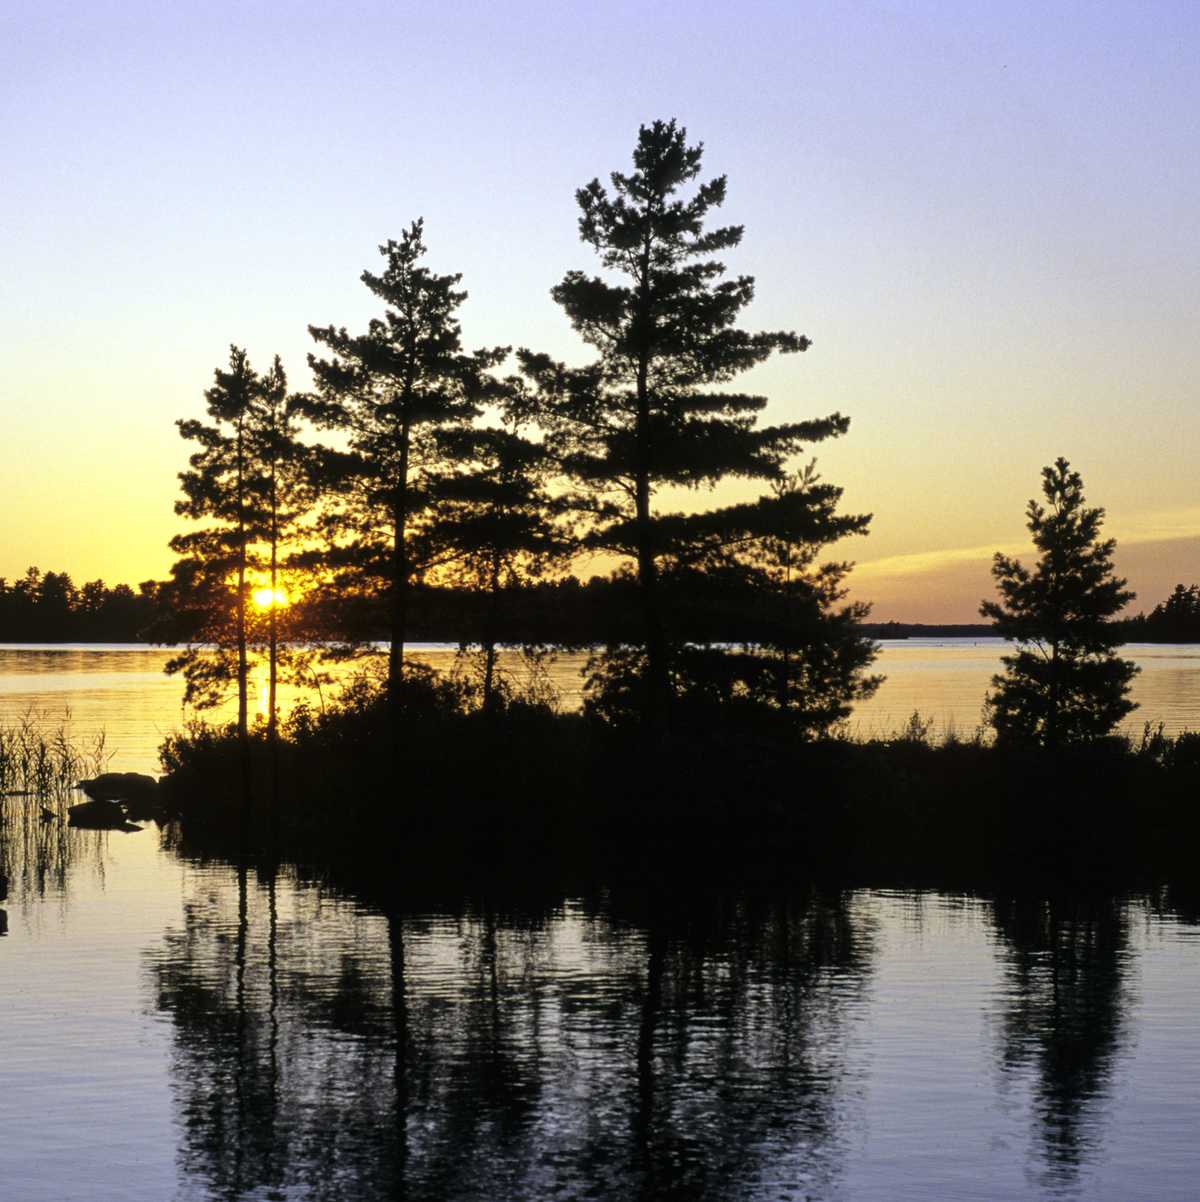 55. Voyageurs National Park. The only national park in Minnesota, Voyageurs National Park stretches 55 miles along the Canadian border. A park rich with history, Voyageurs served a crucial role in the fur trade era. With over 500 islands scattered around 30 lakes, this water-loverÕs paradise has primitive campsites, as well as cozy cabins and resorts. There are many communities that surround the park with a variety of different attractions. Houseboating has become one of the most popular activities in the park.